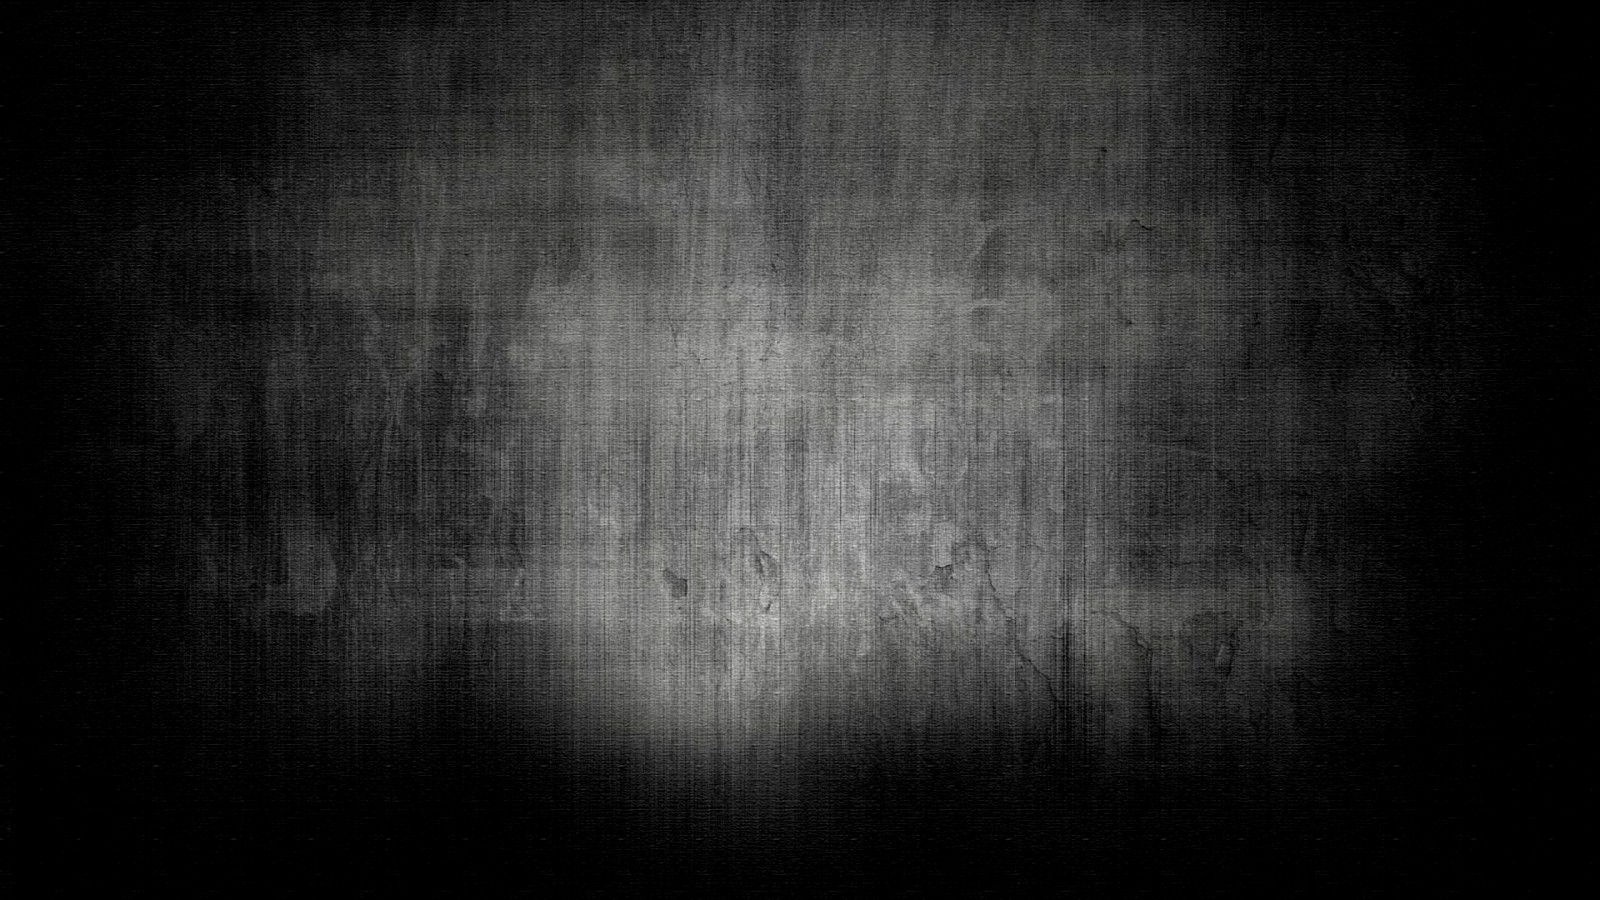 Texture-Background-Dark-Spot-HD.jpg - Yahara Pride Farms: www.yaharapridefarms.org/?attachment_id=893